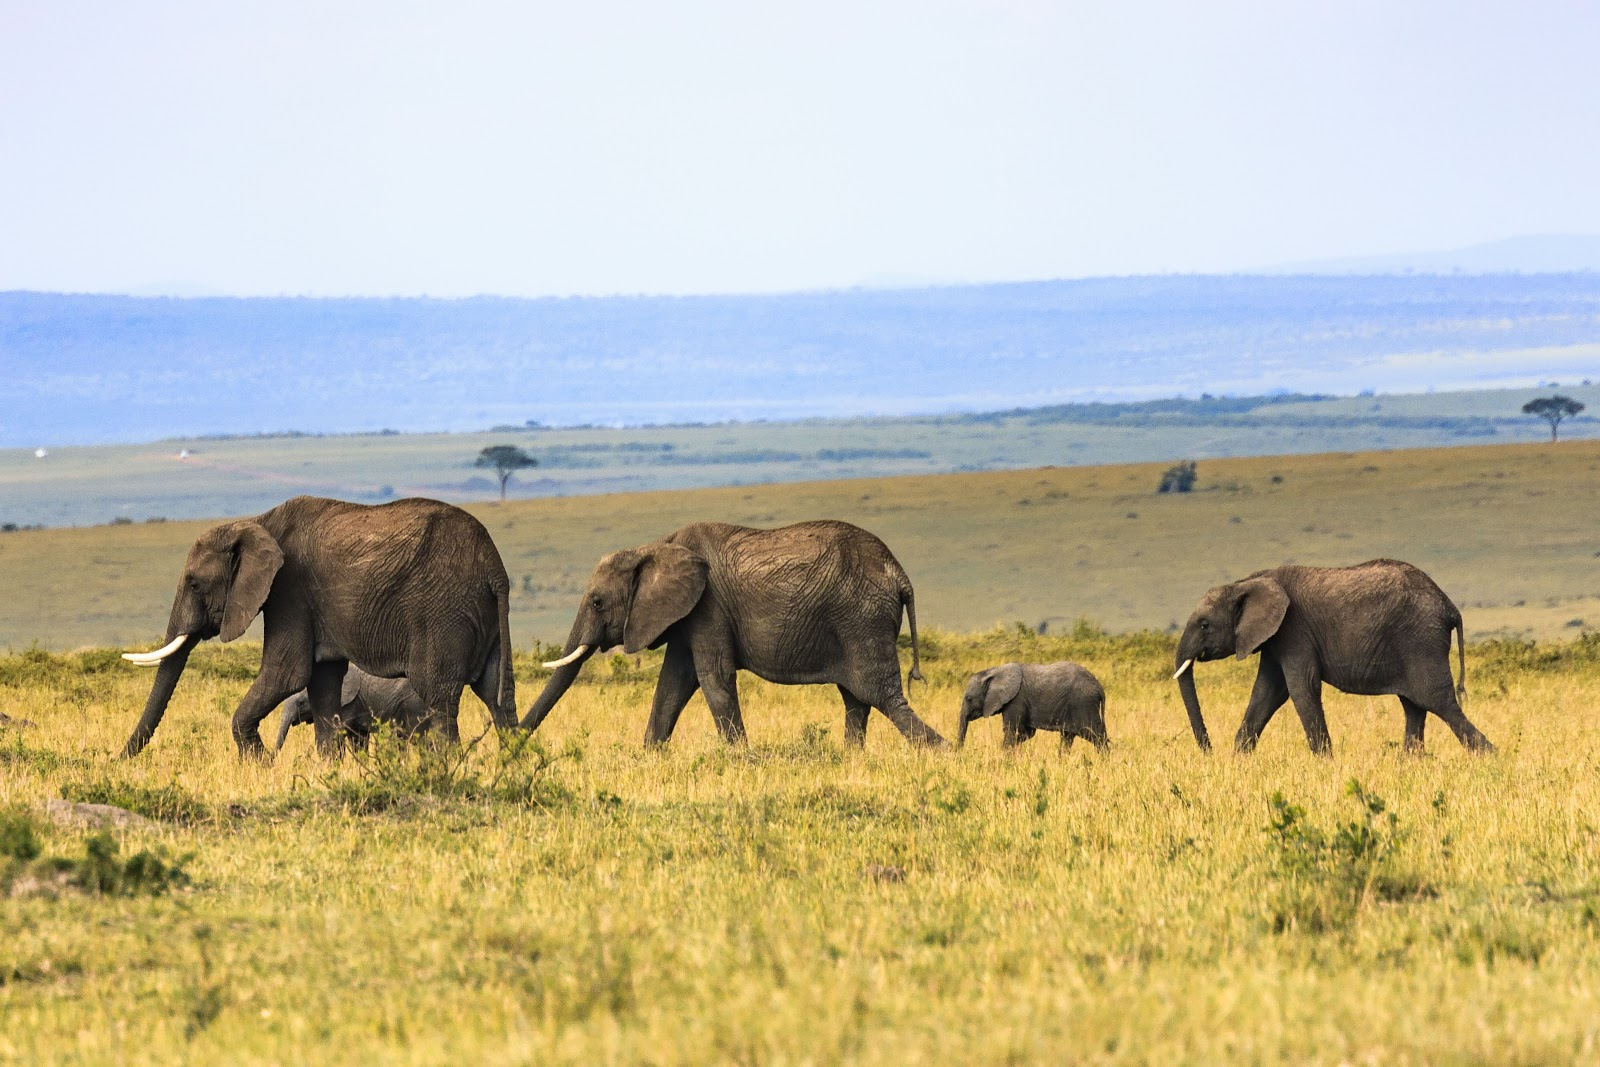 Three adult and two baby elephants walking through the grassland